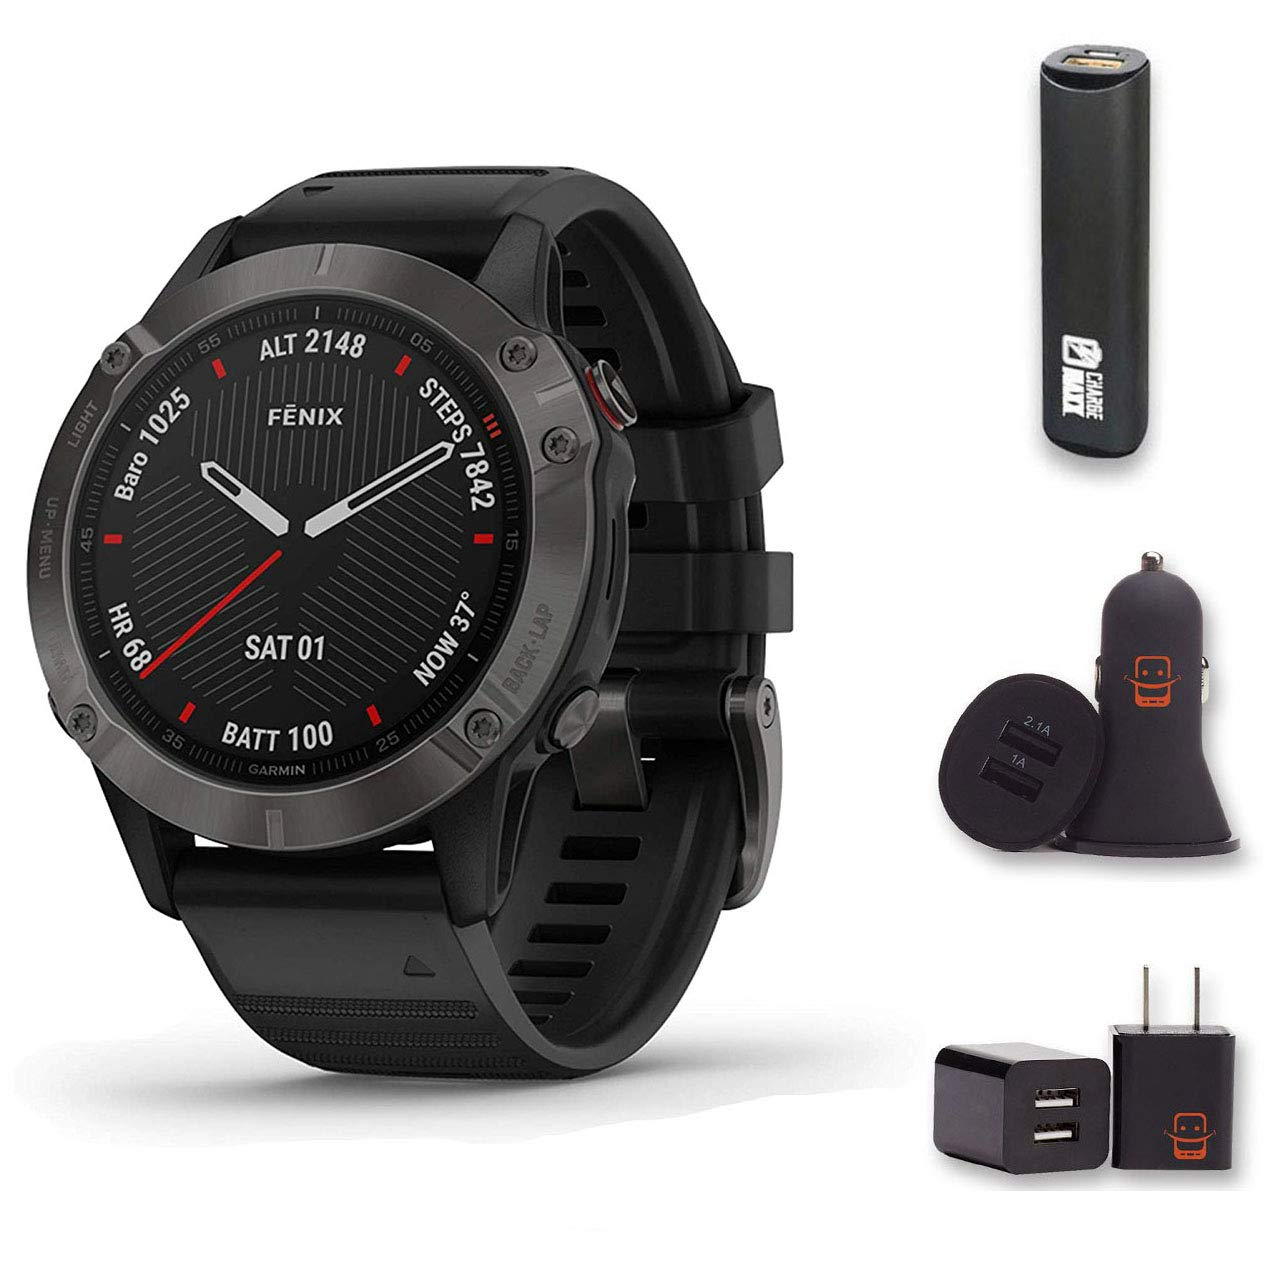 Garmin Fenix 6 Sapphire - (Dark Gray w/Black Band) Bundle with PowerBank + USB Car Charger + USB Wall Charger (4 Items)